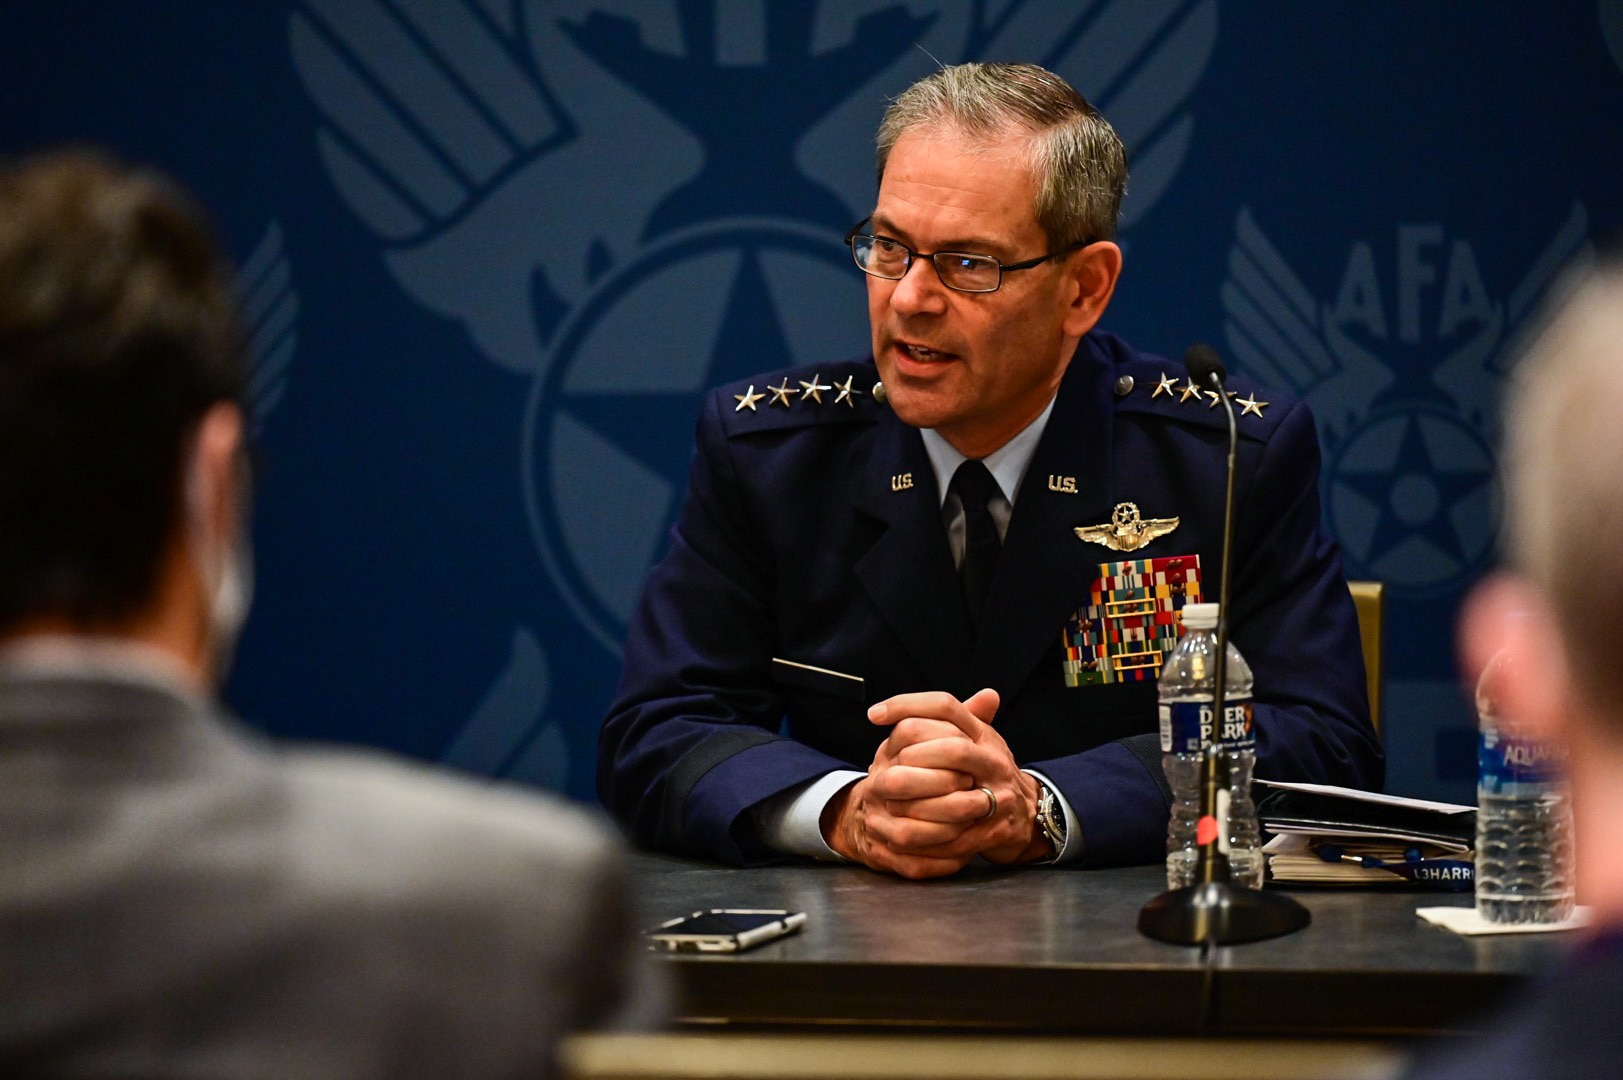 Air Force Association's Air, Space, Cyber Conference focused on need for competition, deterrence